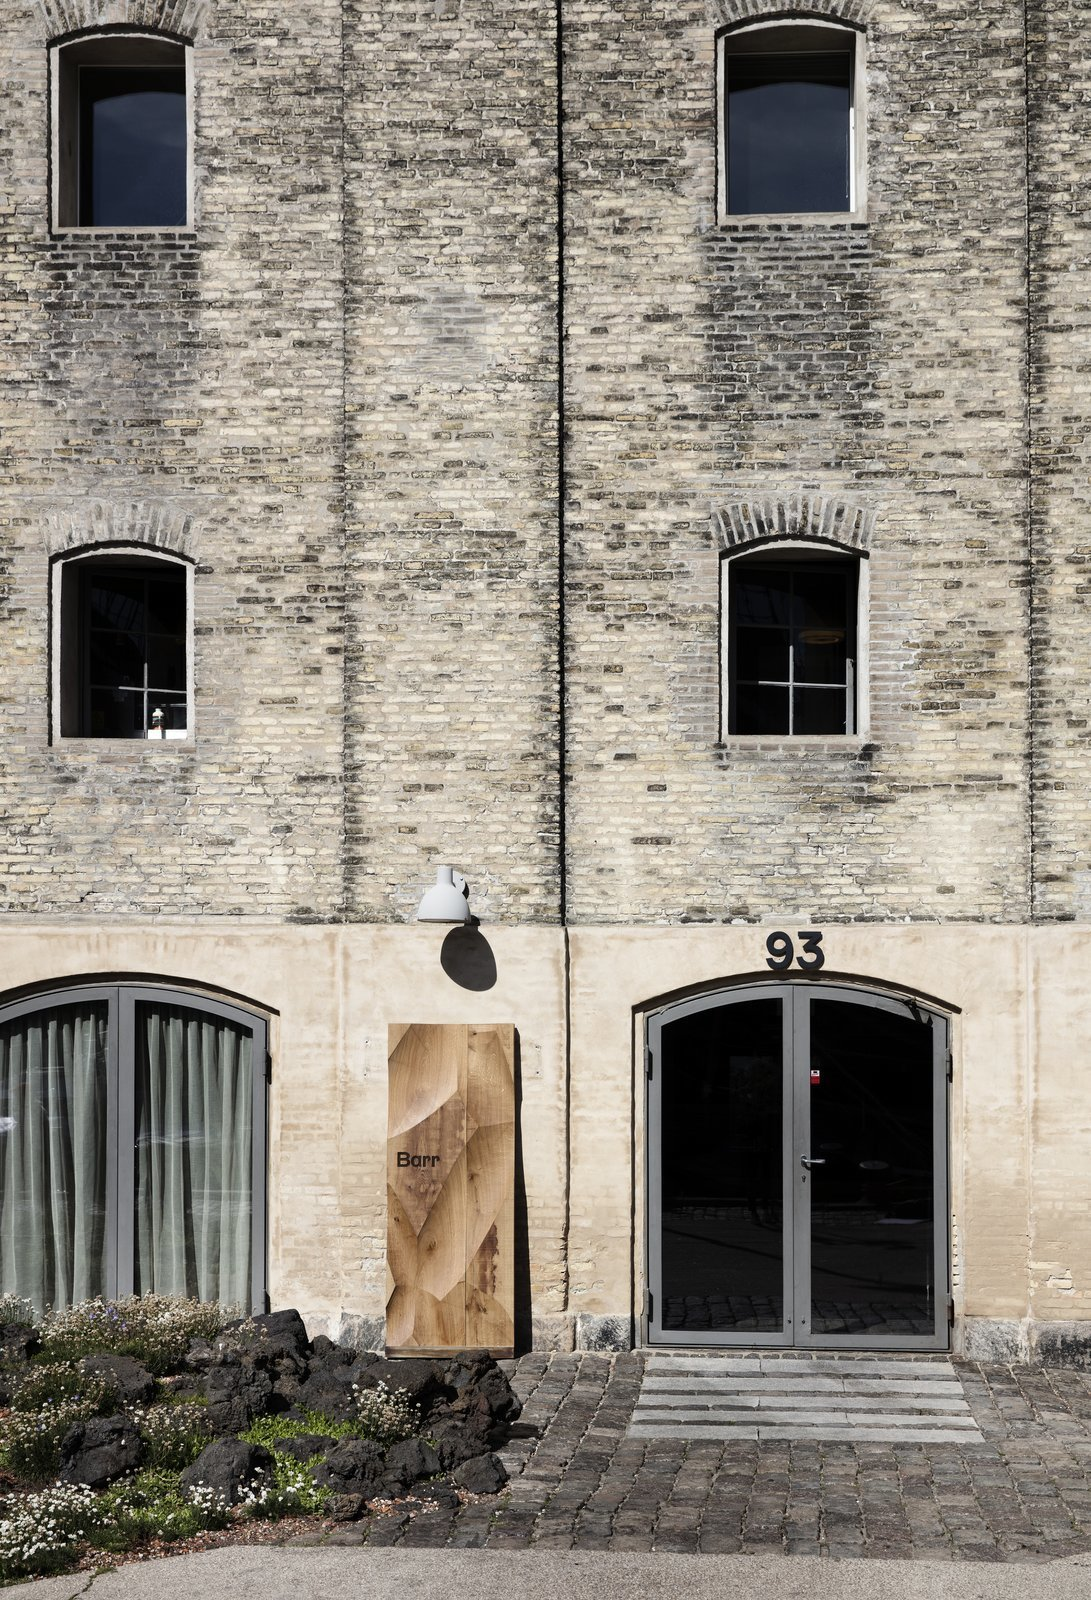 Barr opened its doors on July 5 and can be found on Copenhagen's waterfront inside the Nordatlantens Brygge (North Atlantic House).